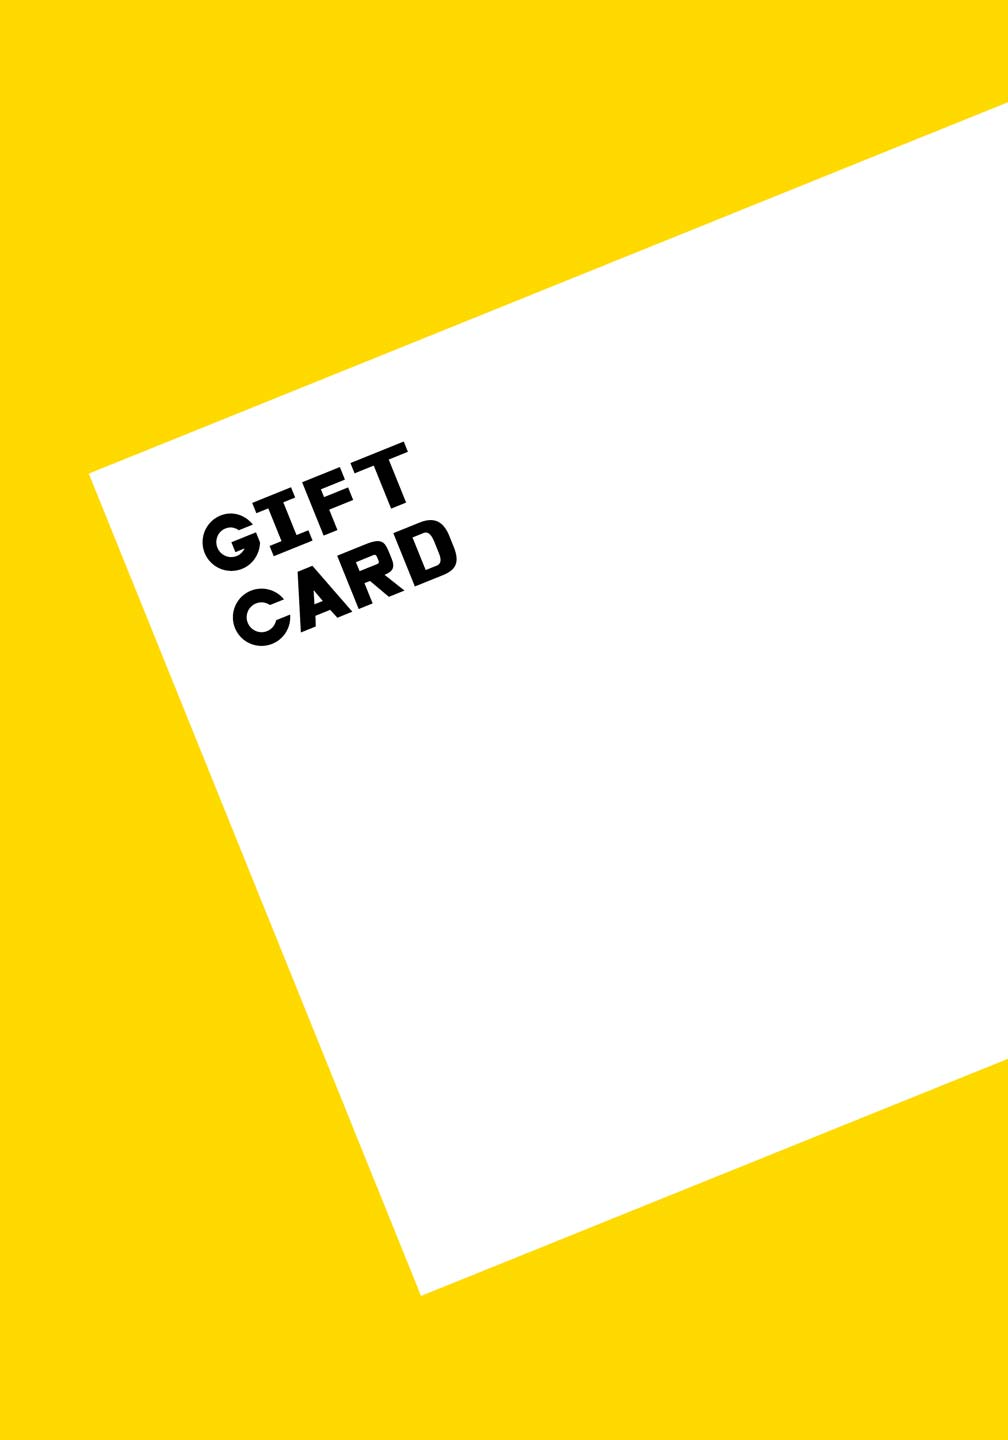 Gift-Card-Graphic